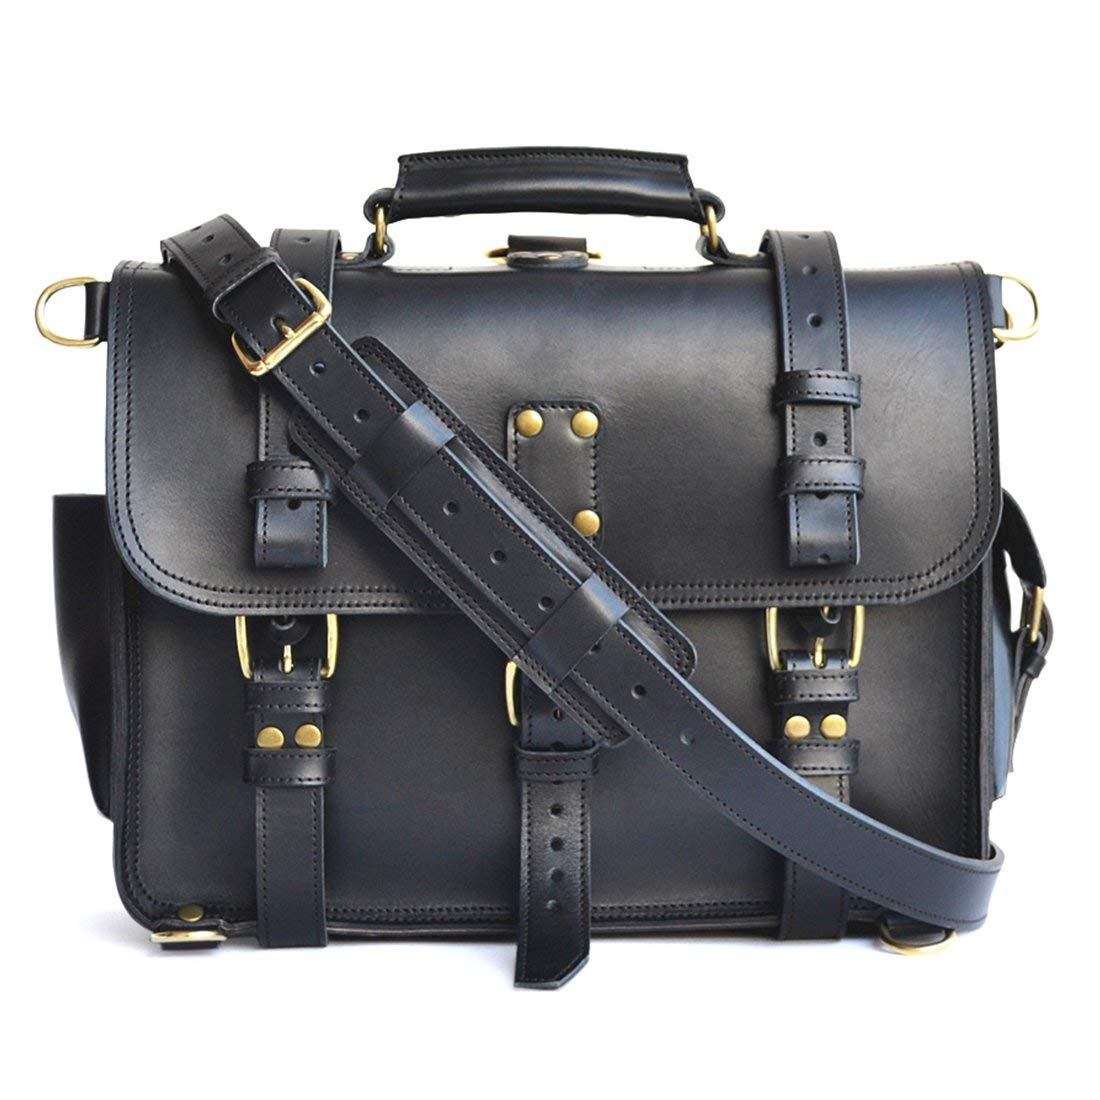 8adad99a27 Get Quotations · Single Space Leather Briefcase